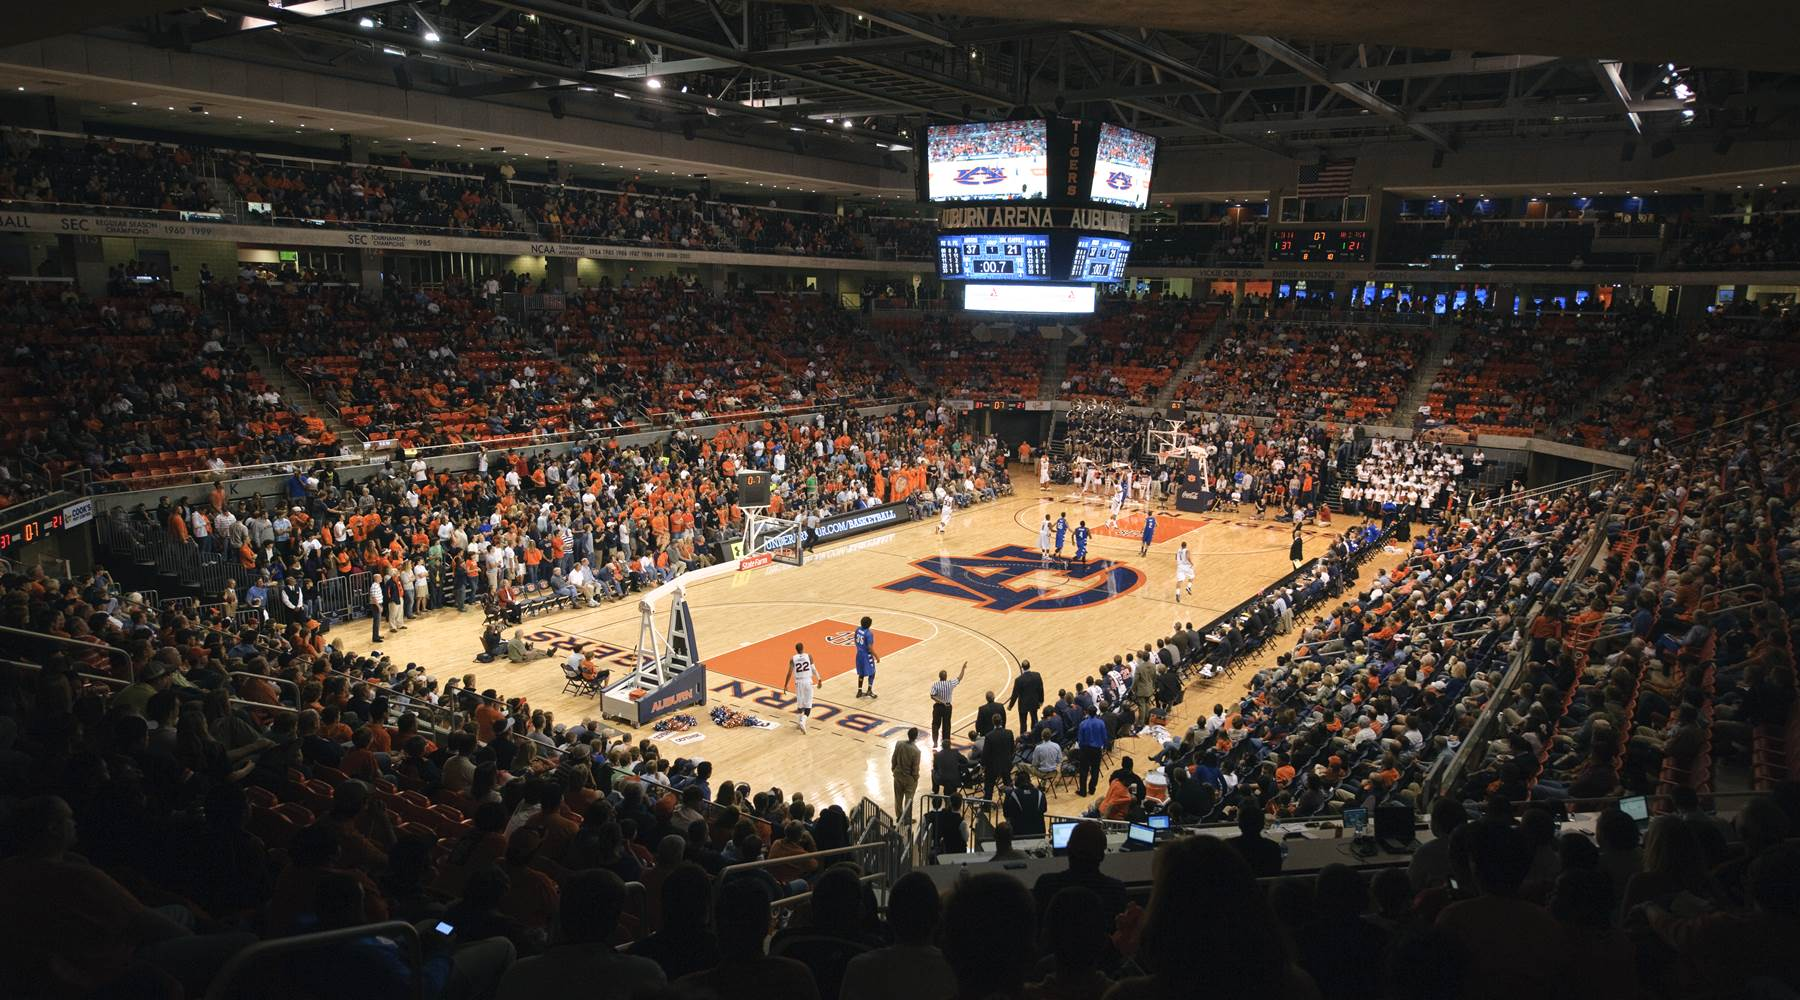 Basketball game at Auburn Arena